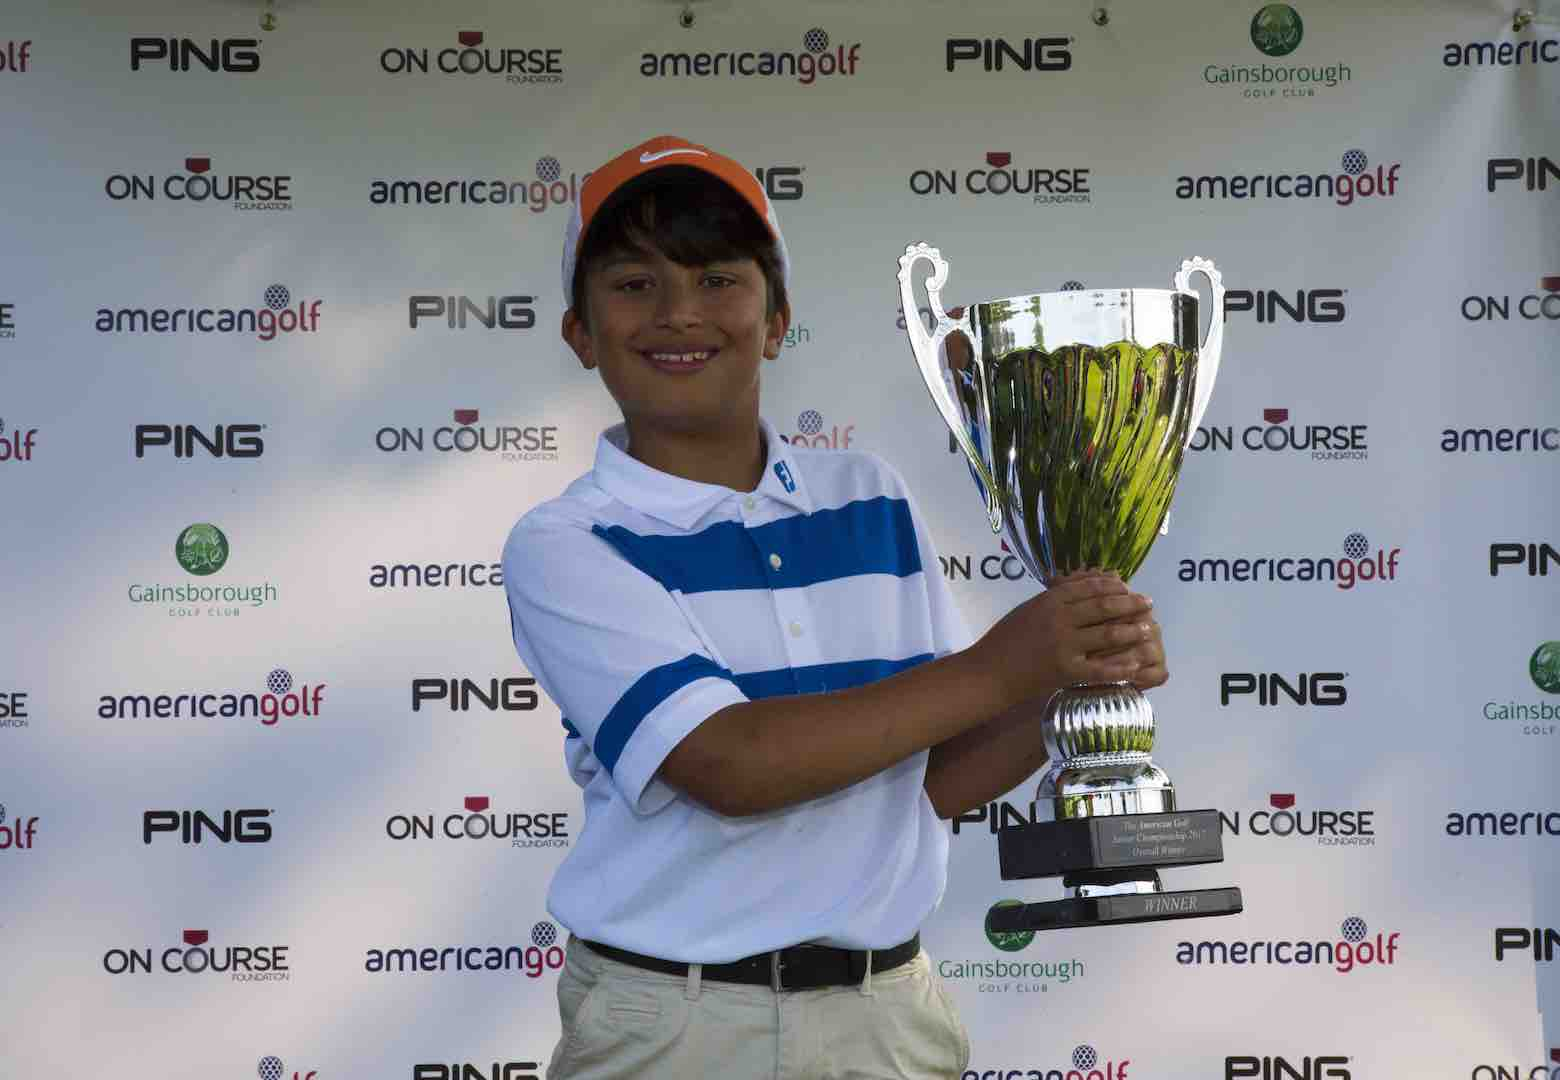 American Golf Crowns Junior Champions for 2017